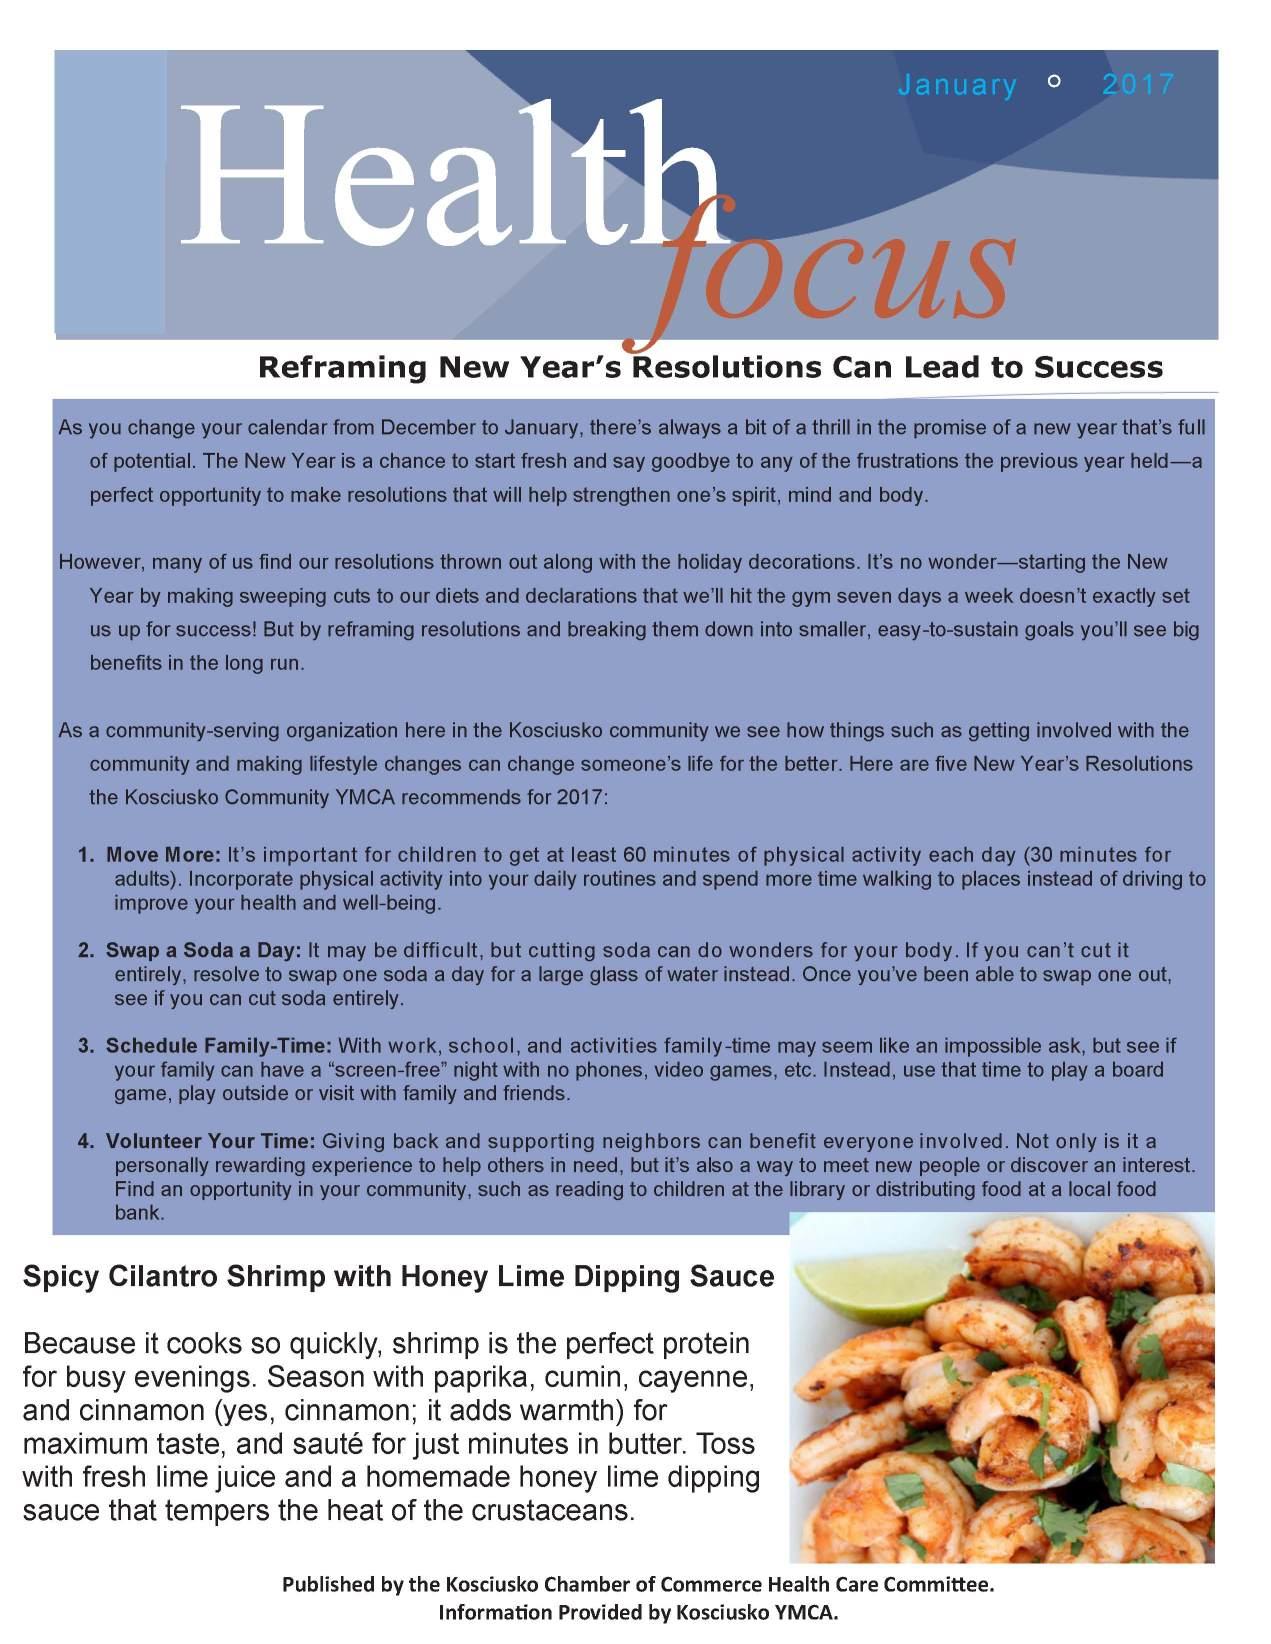 January-2017-Health-and-Wellness-Newsletter-w635.jpg